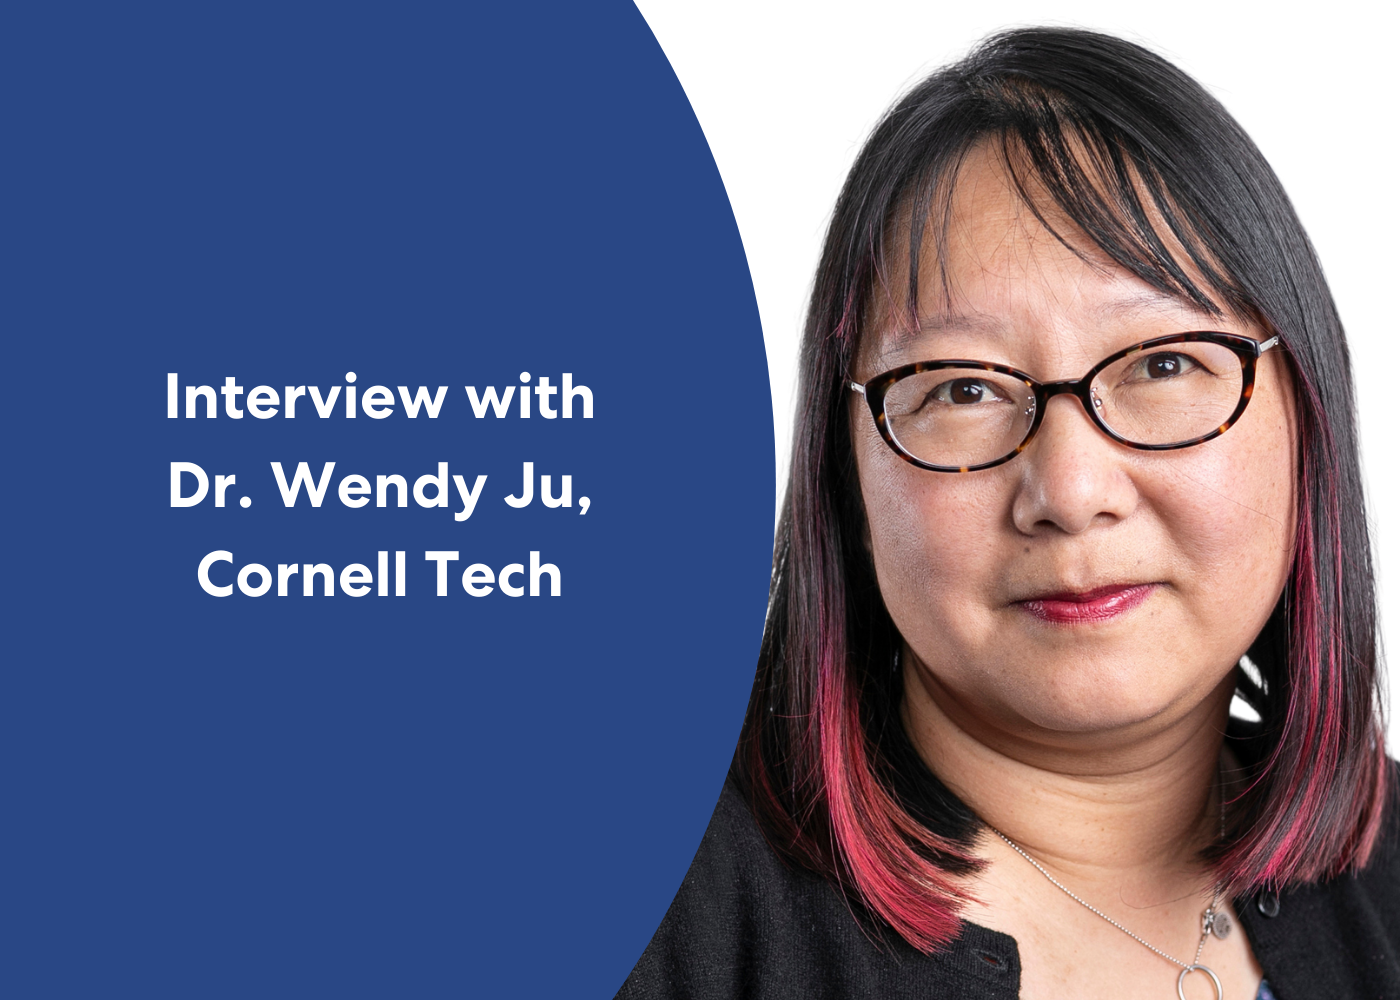 Proactive Agent Design: Interview with Dr. Wendy Ju, Cornell Tech